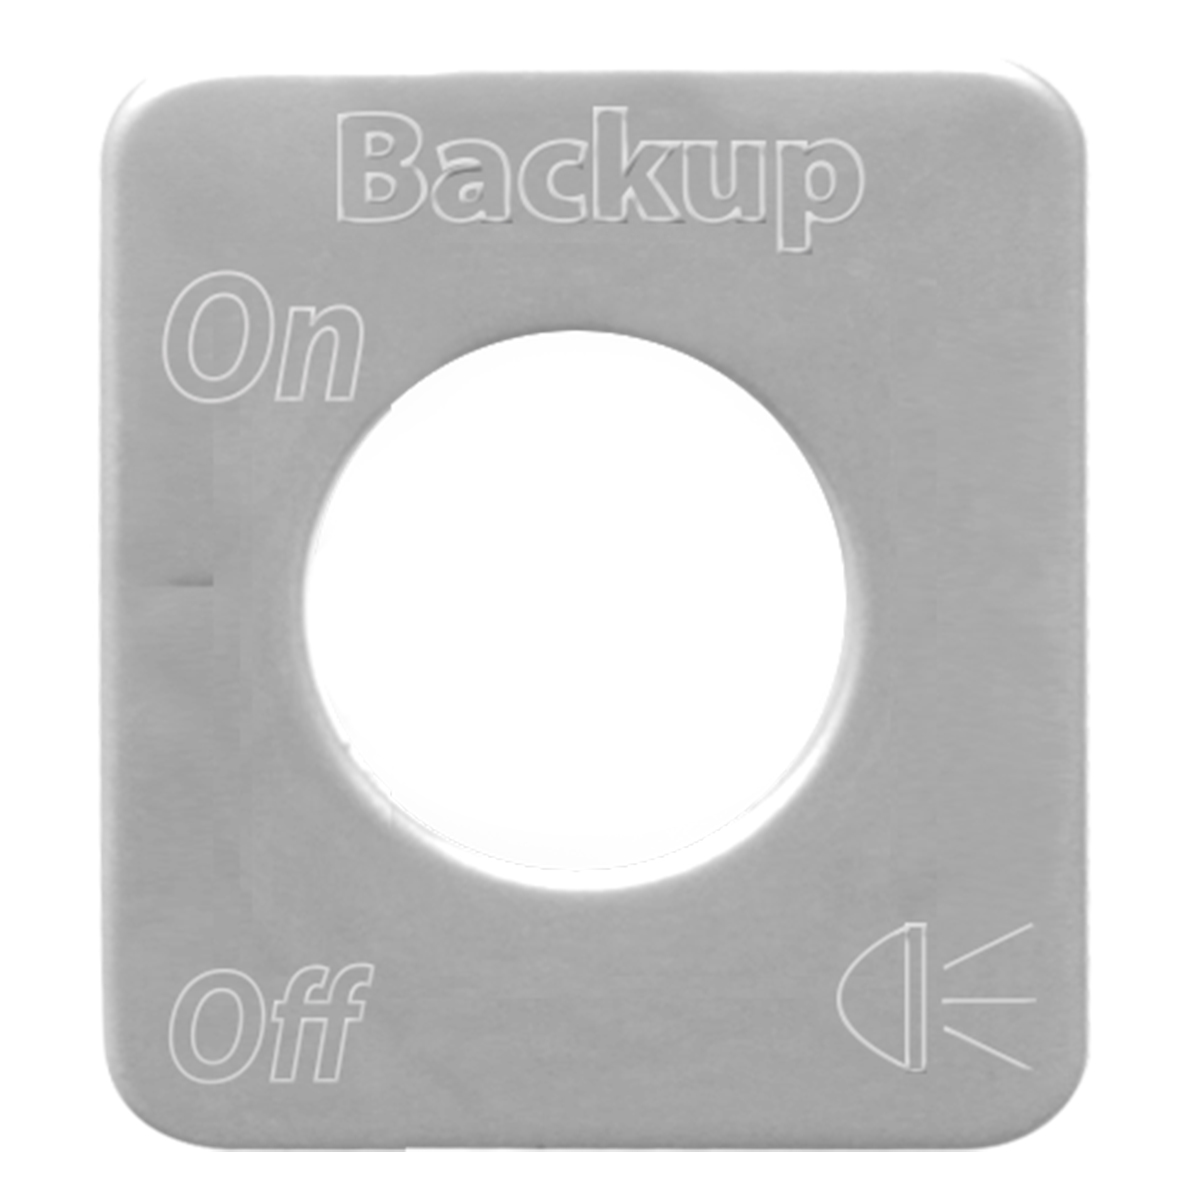 68601 Stainless Steel Backup Light Switch Plate for KW